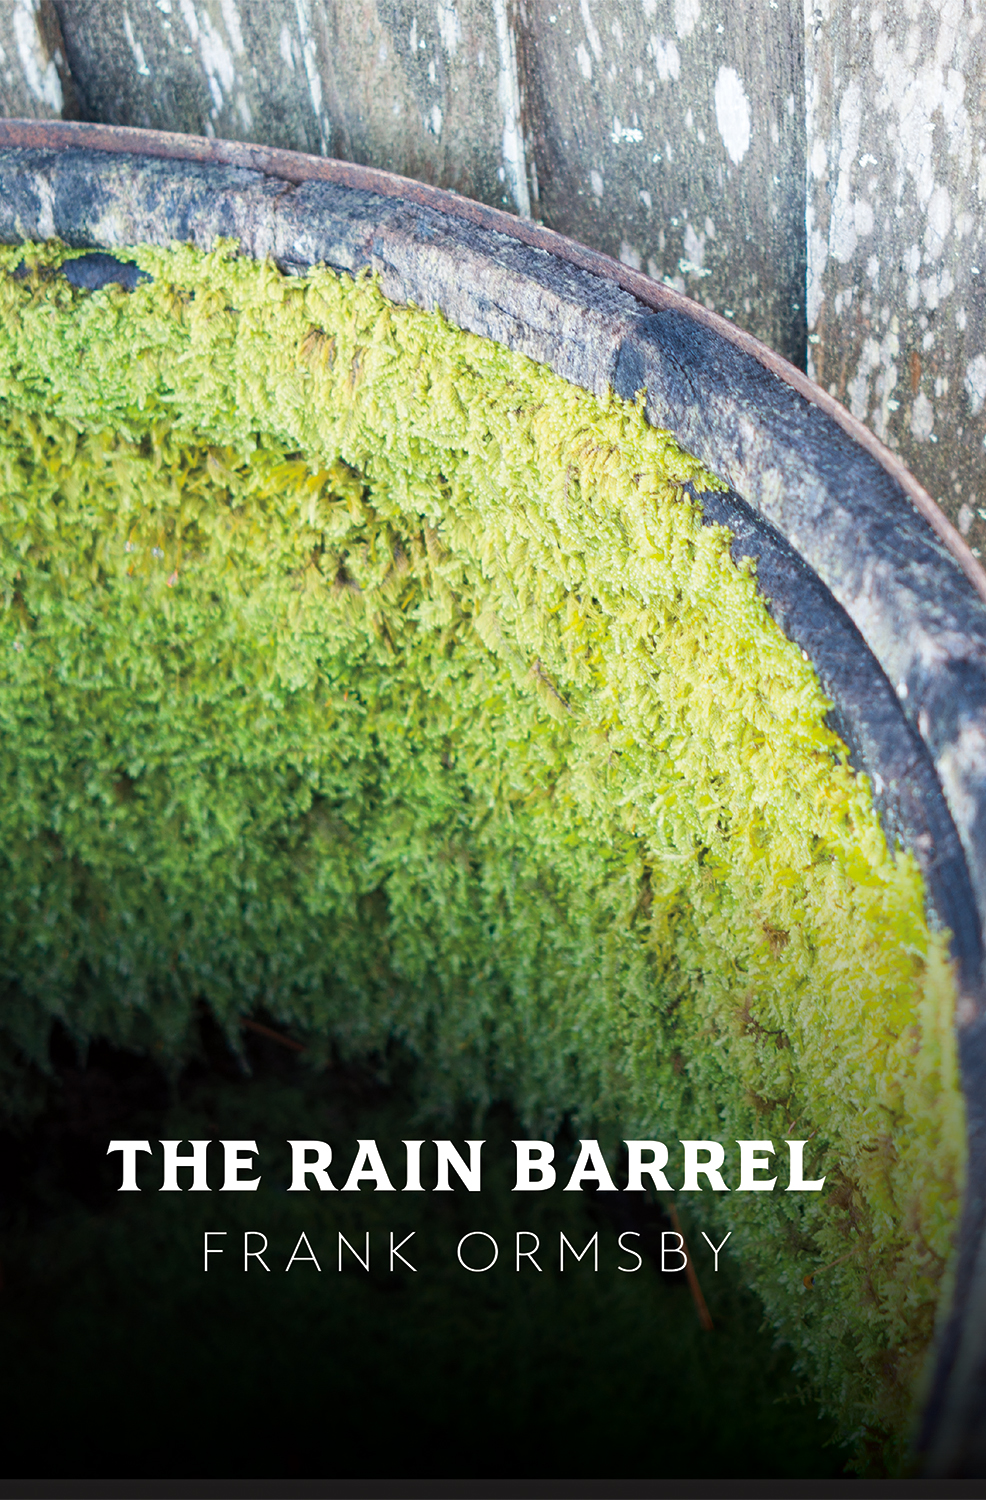 The Rain Barrel by Frank Ormsby